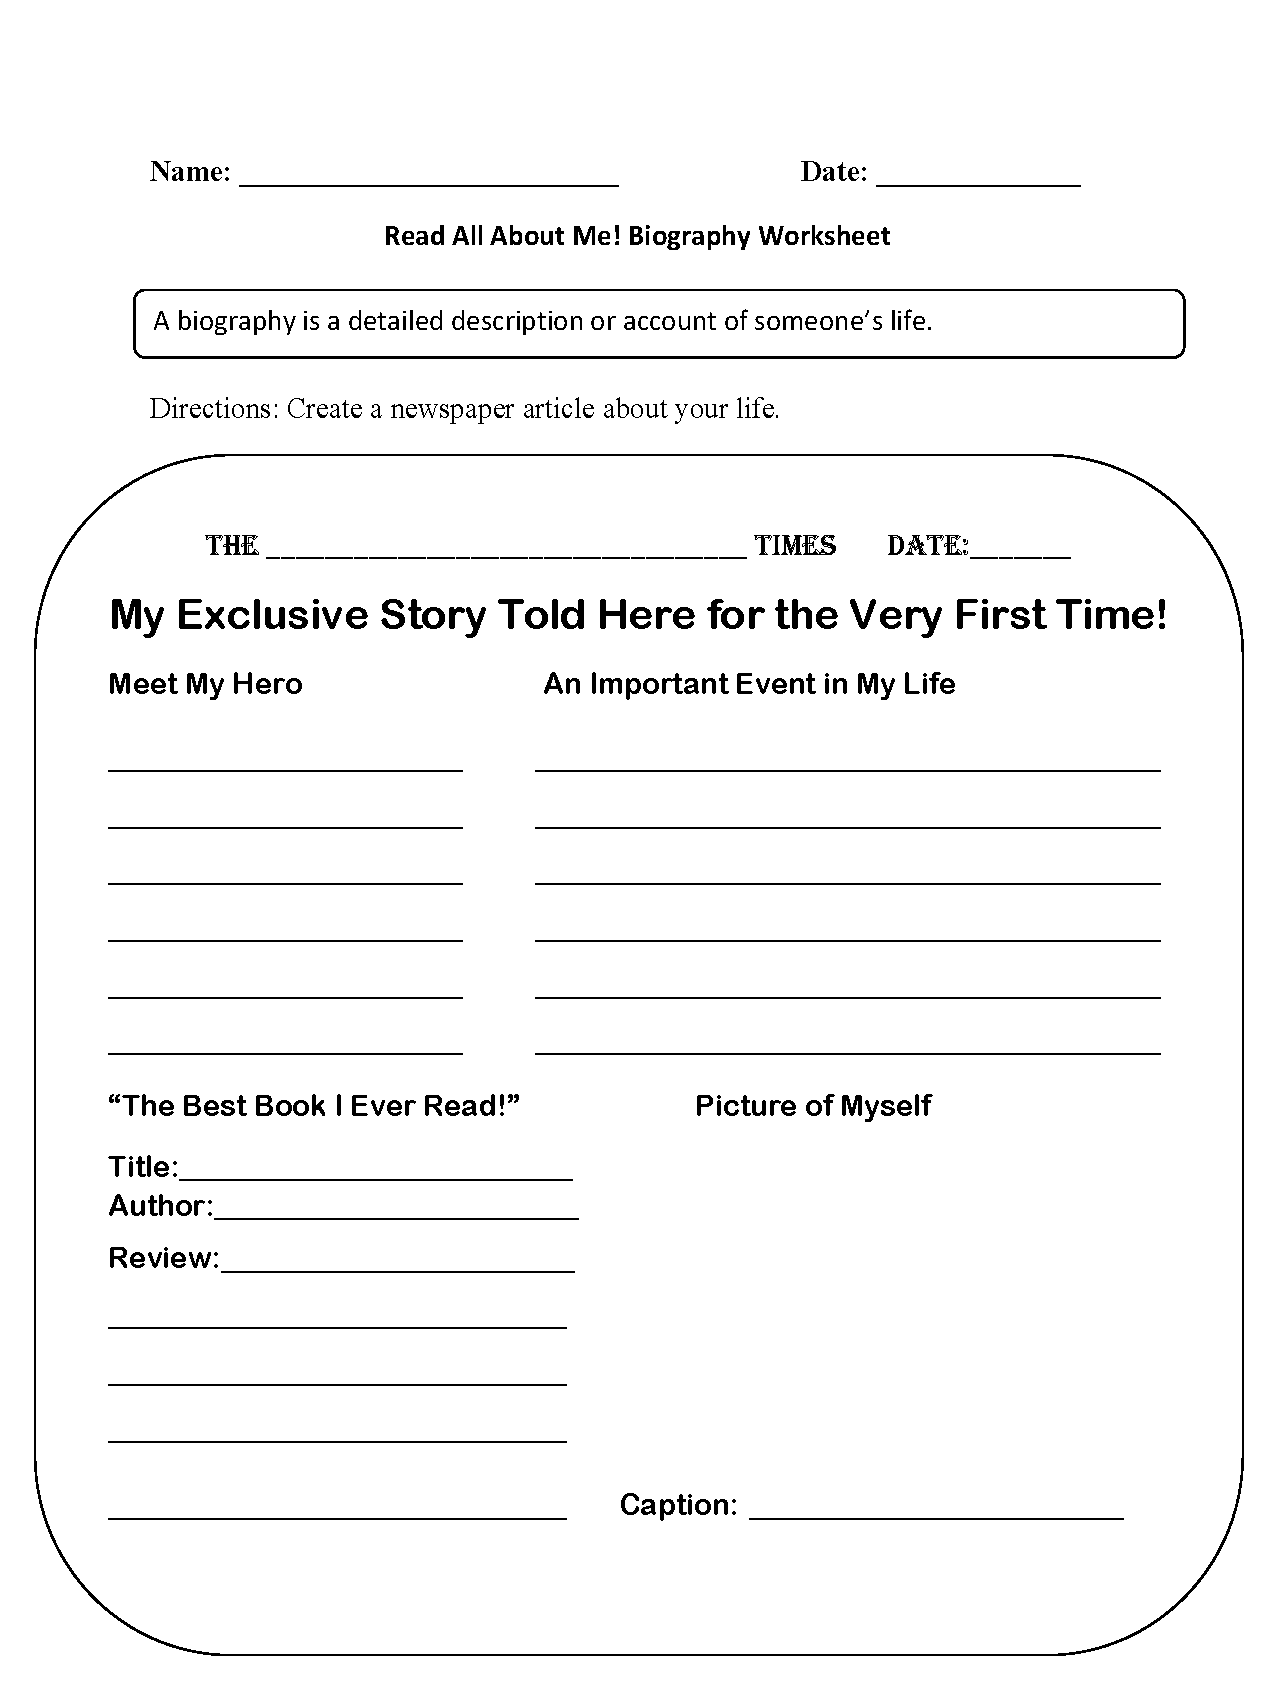 Back To School Worksheets Read All About Me Back To School Worksheets